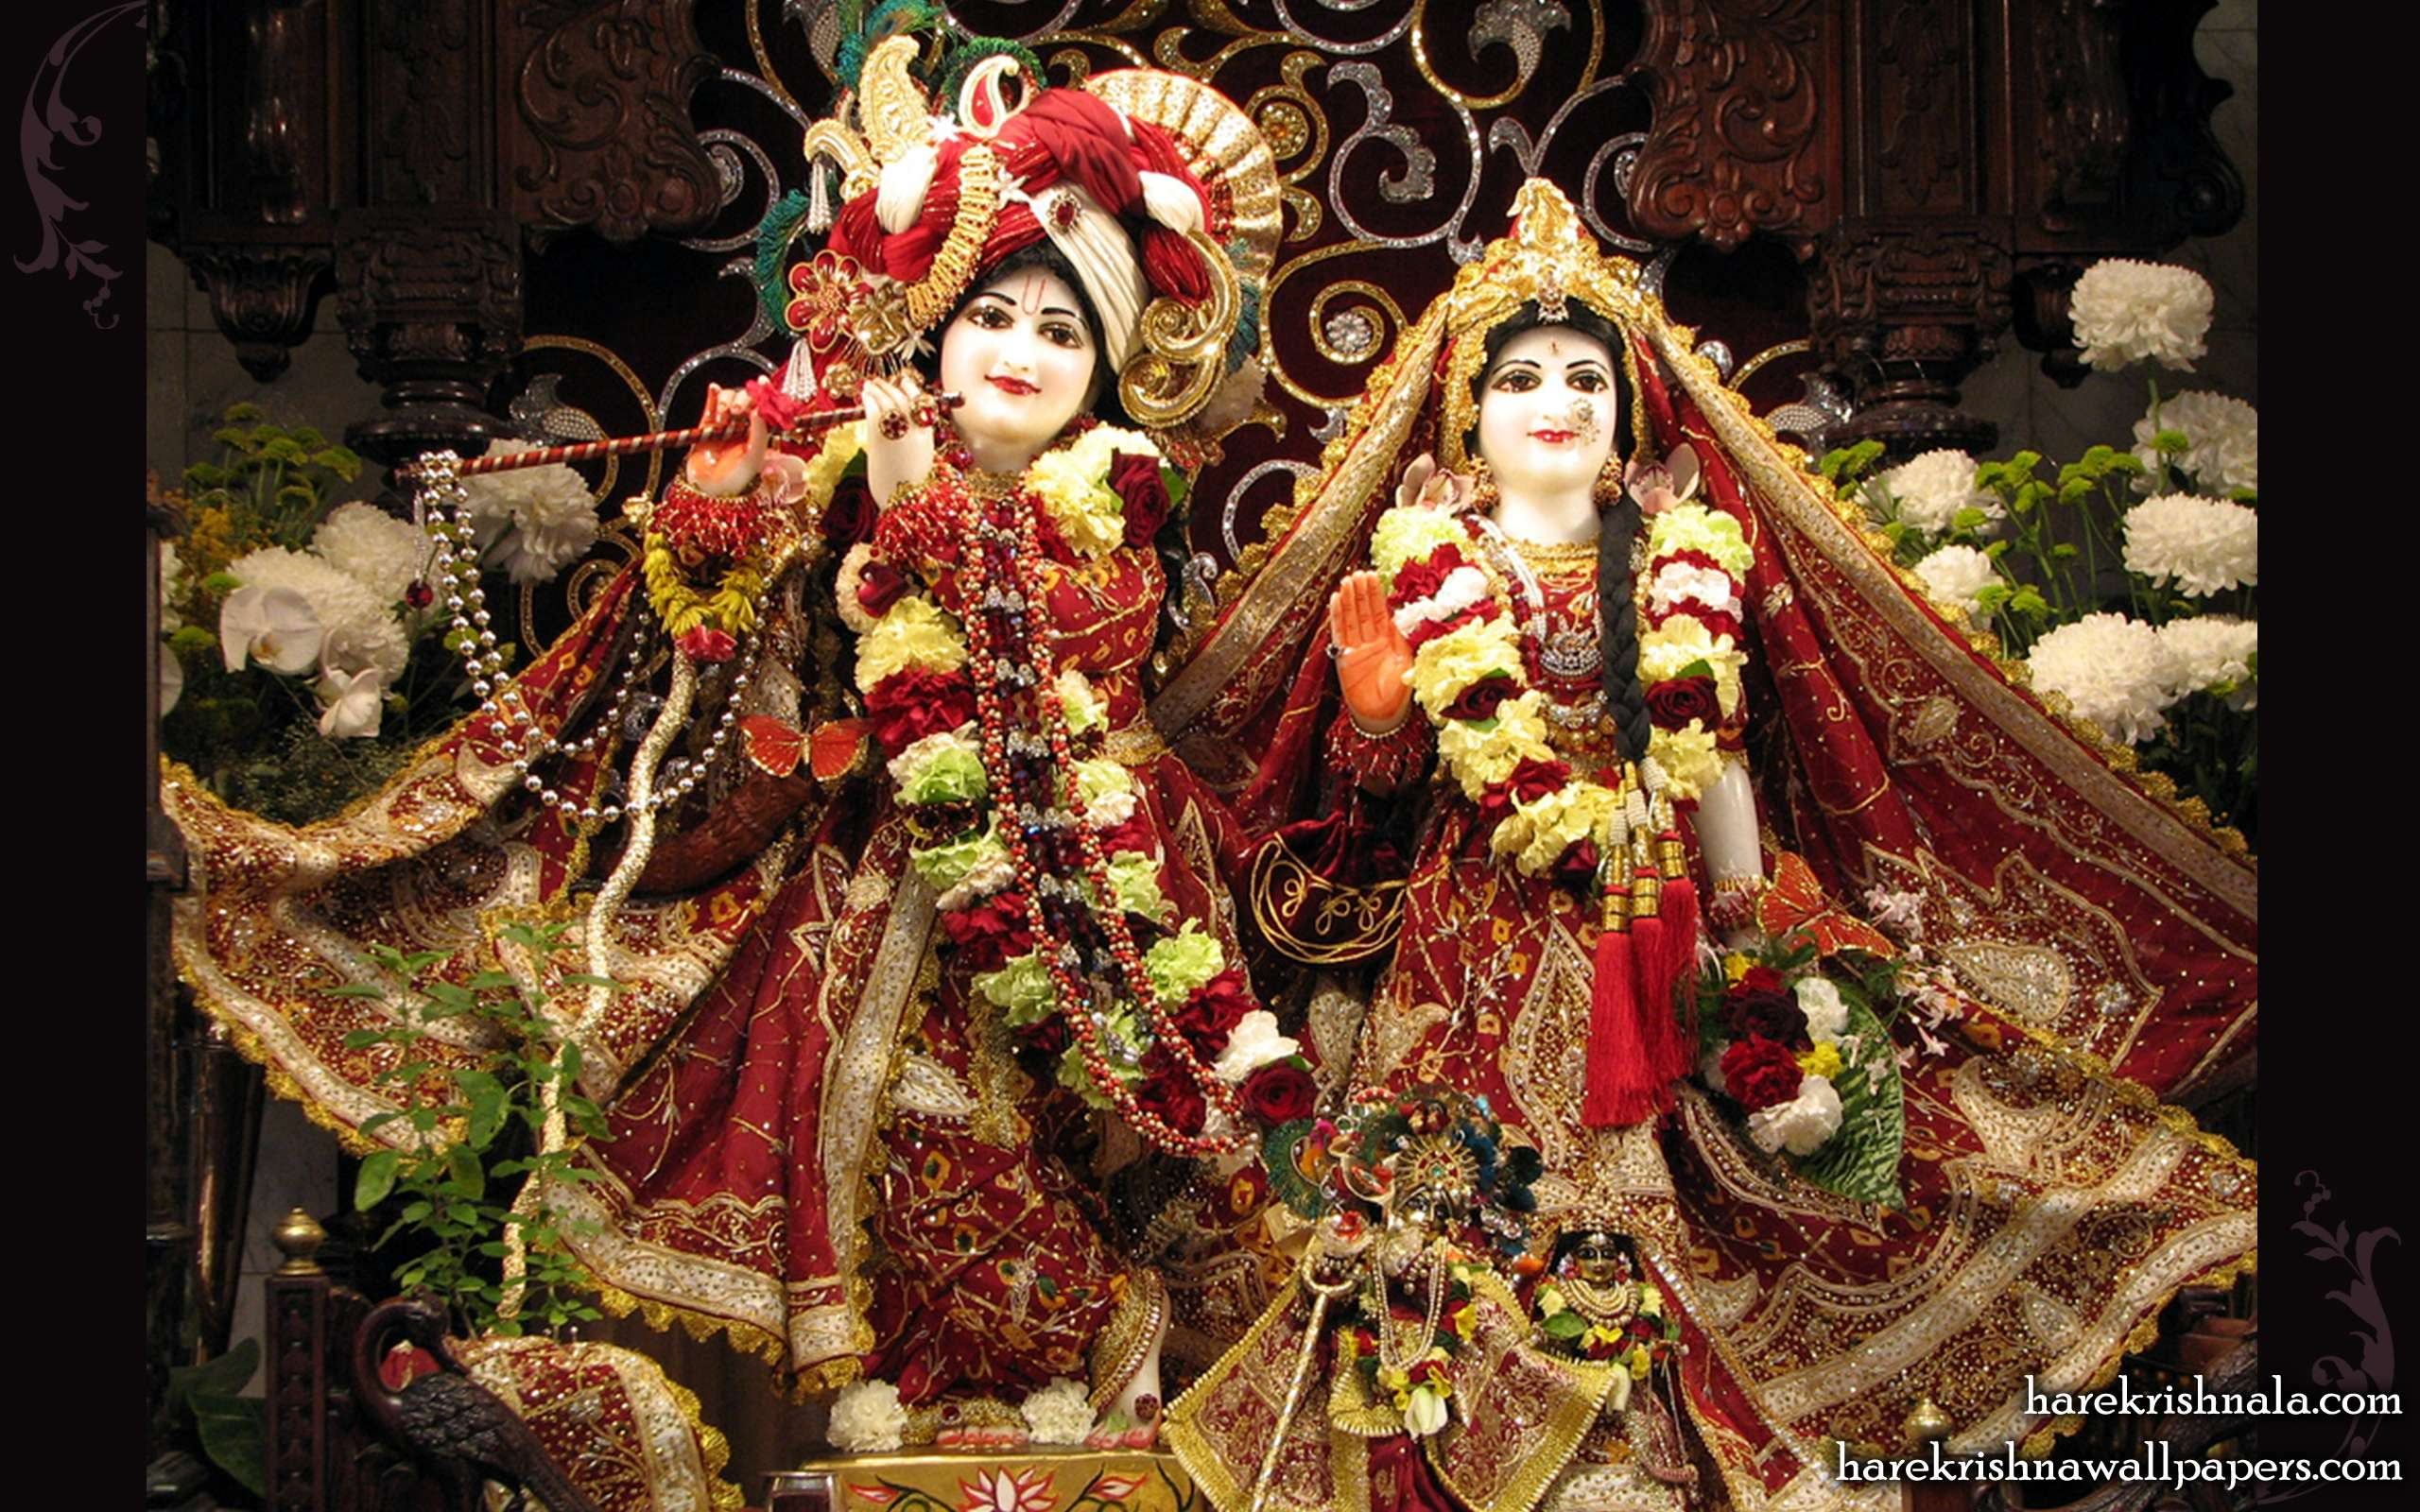 Hare Krishna Wallpapers Com